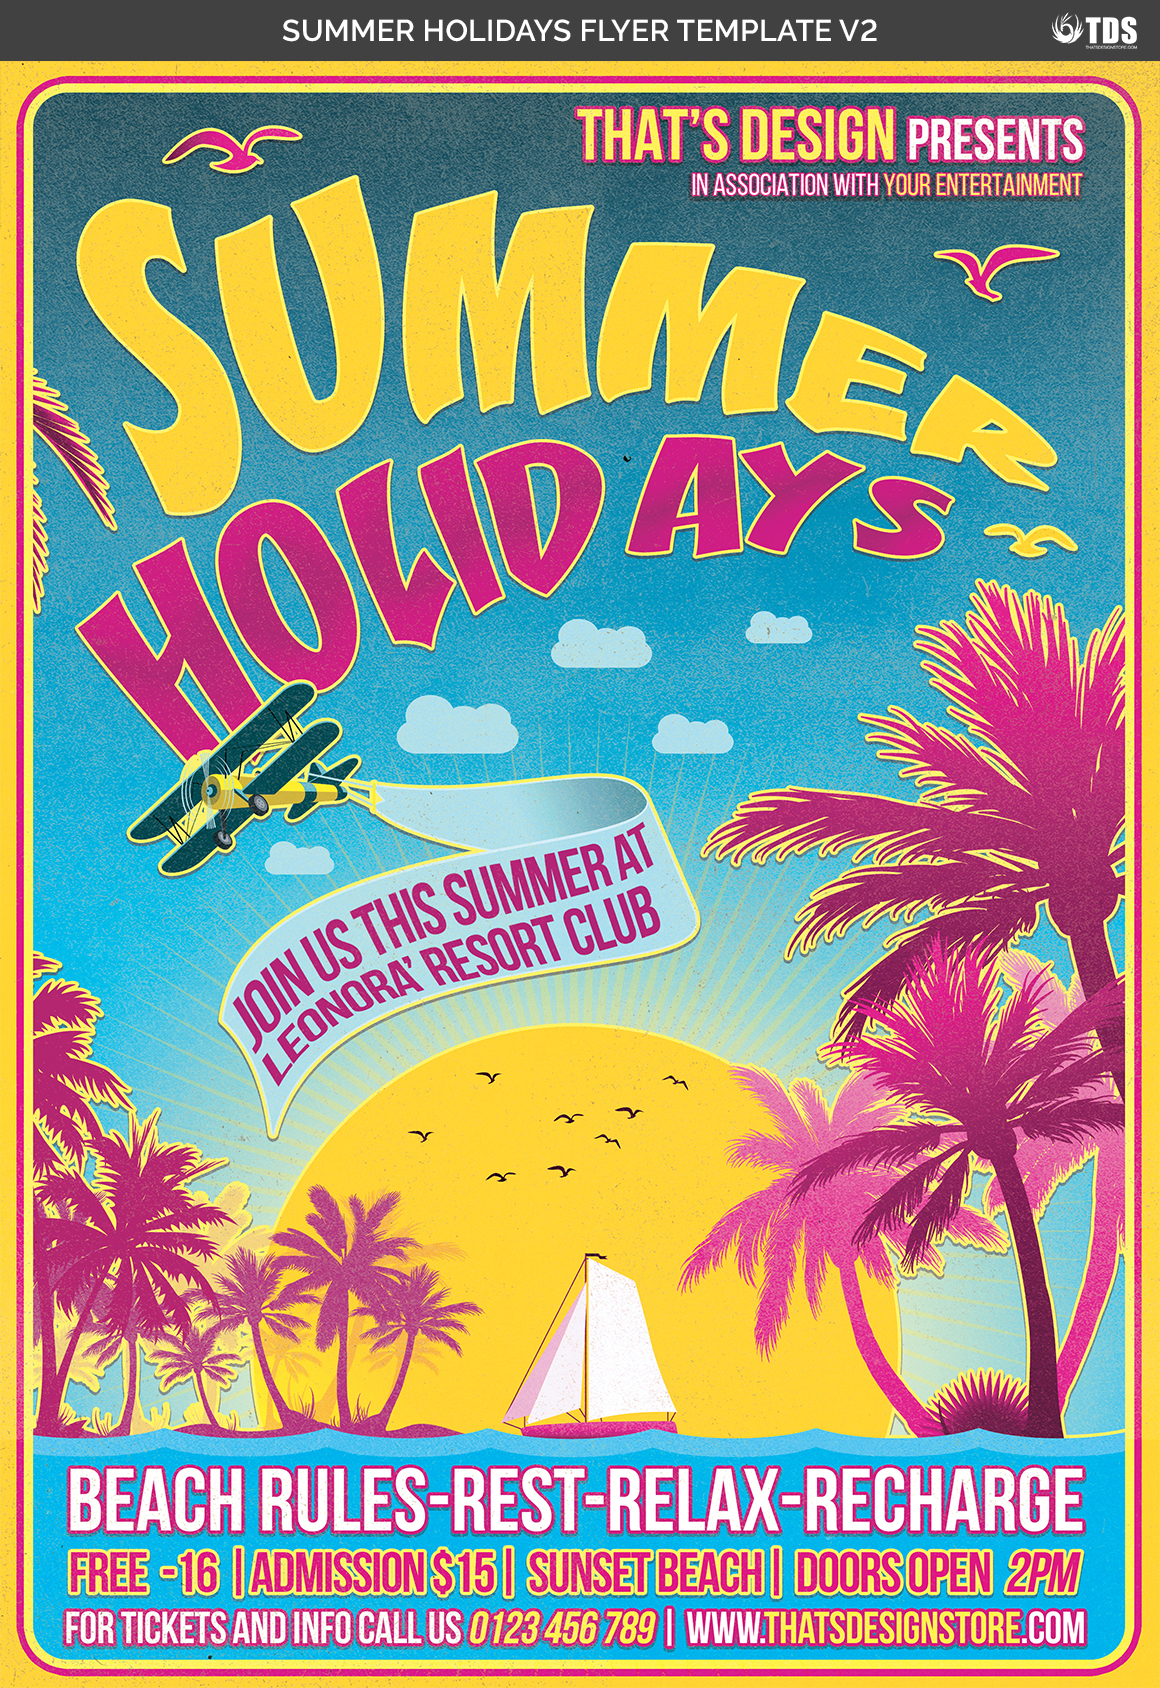 Summer Holidays Flyer Template V2 example image 7